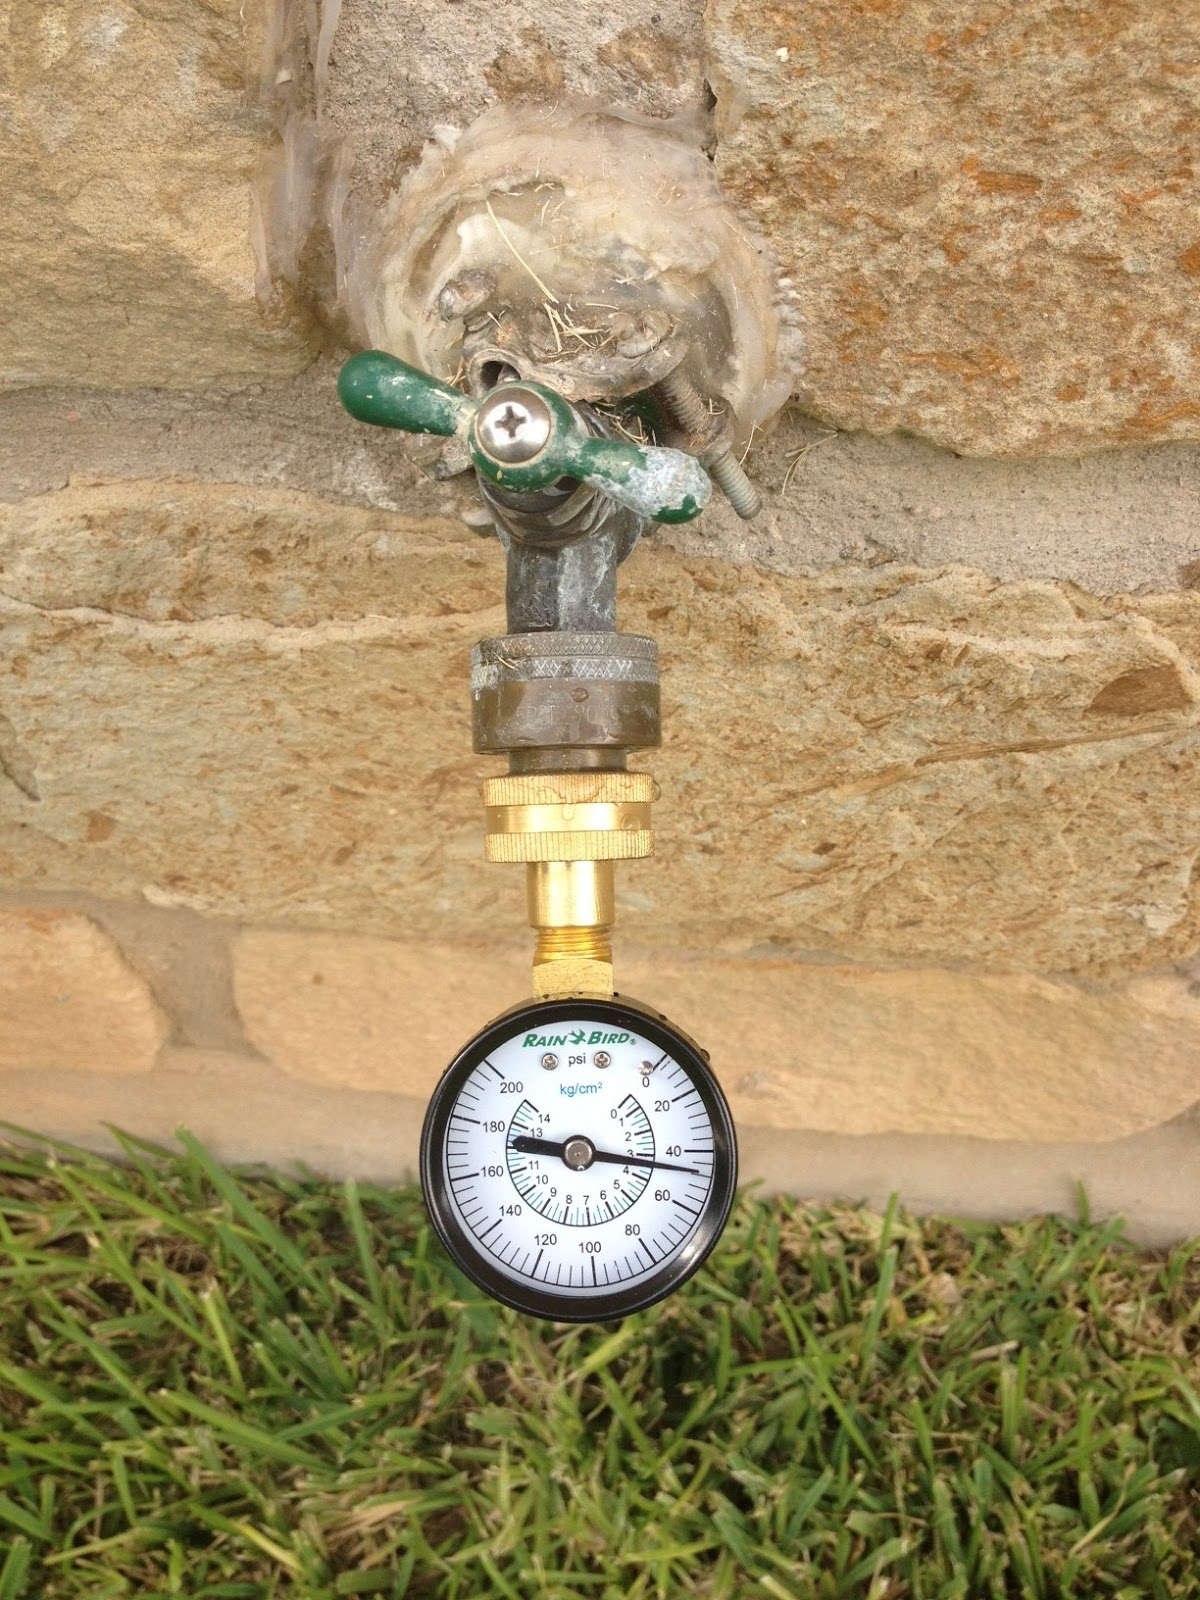 how to make your water pressure better